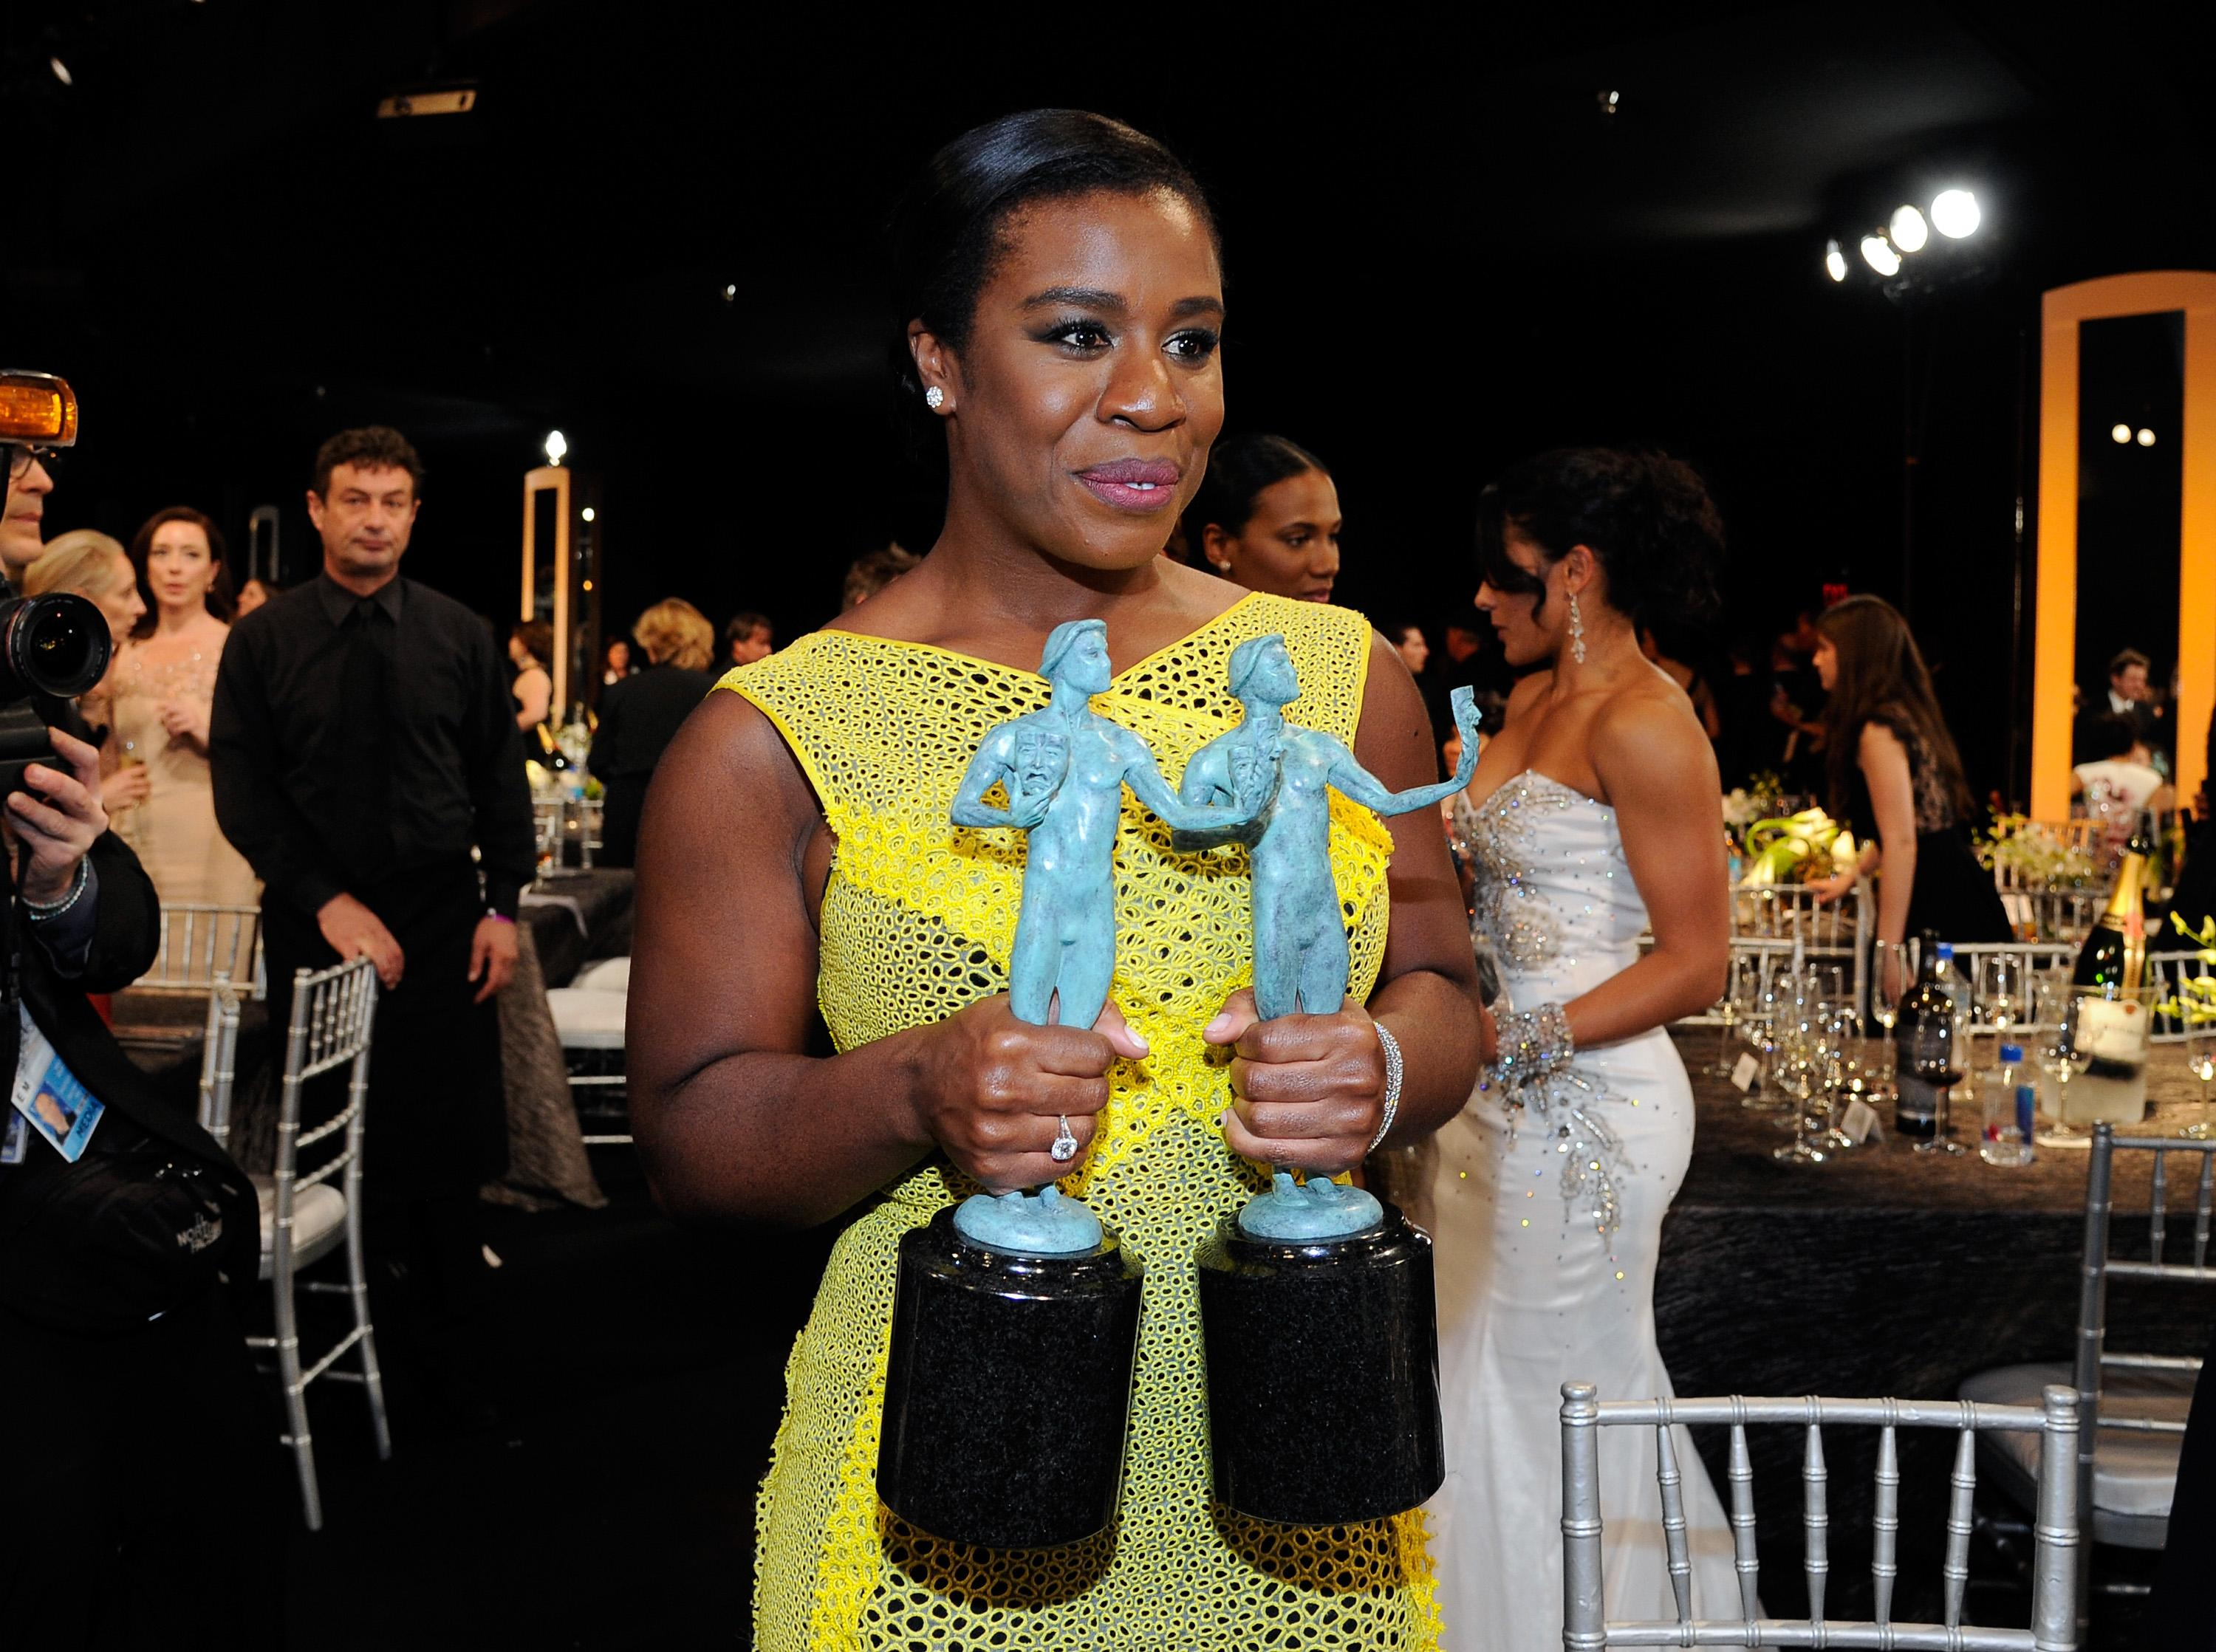 SAG Awards: Newcomers Reign in TV Races